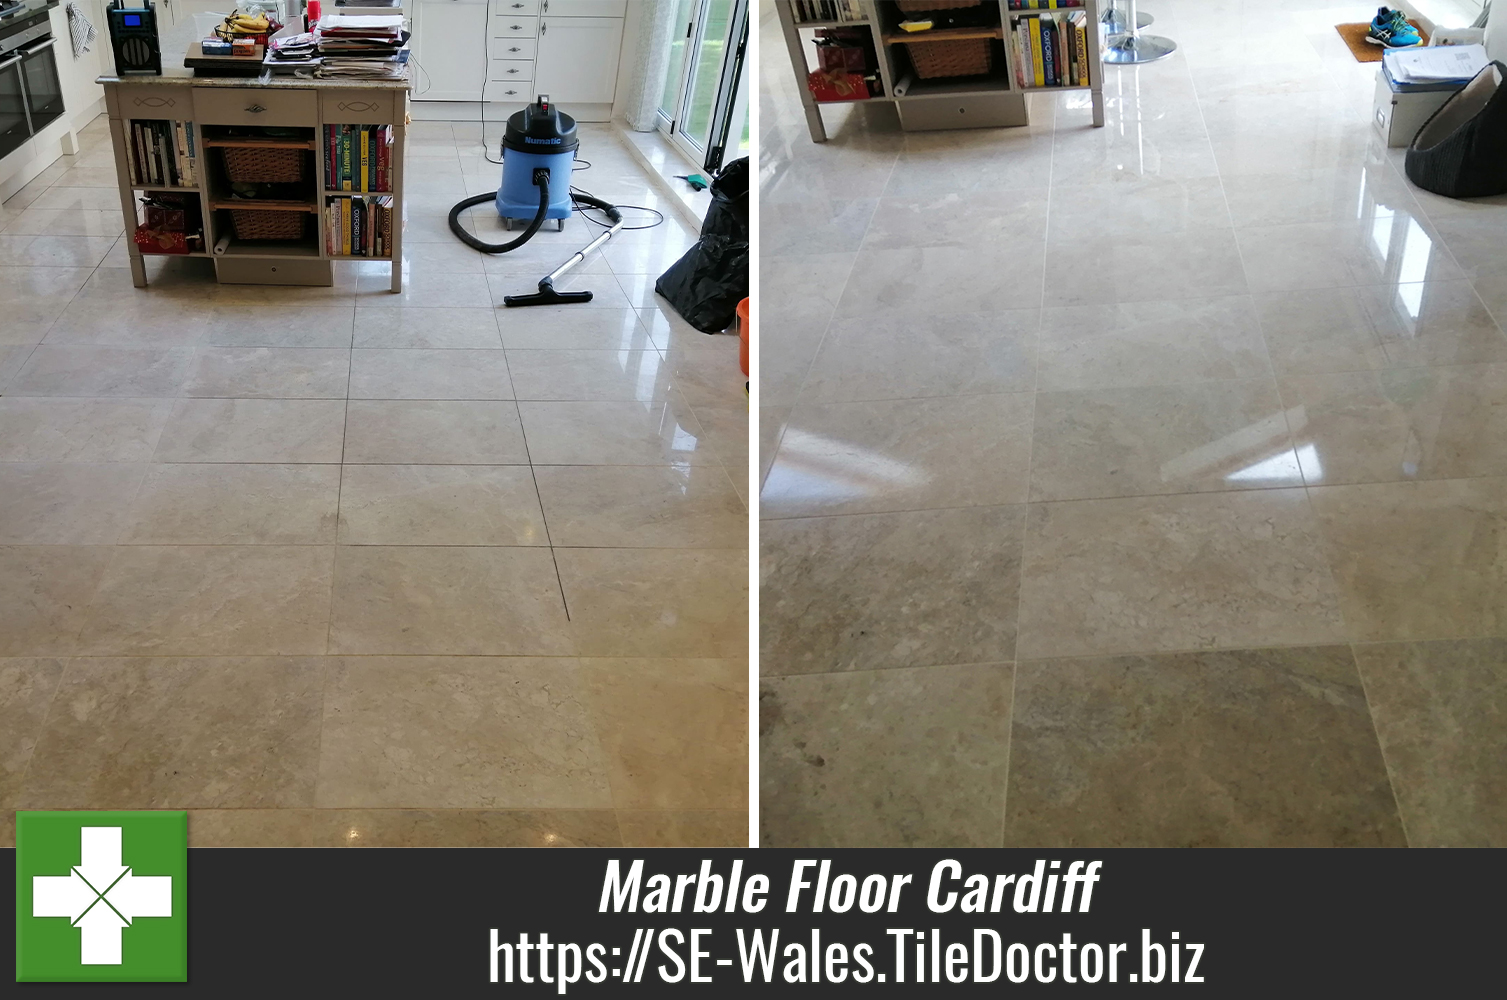 Marble Kitchen Floor Grout Cleaned and Polished in Cardiff